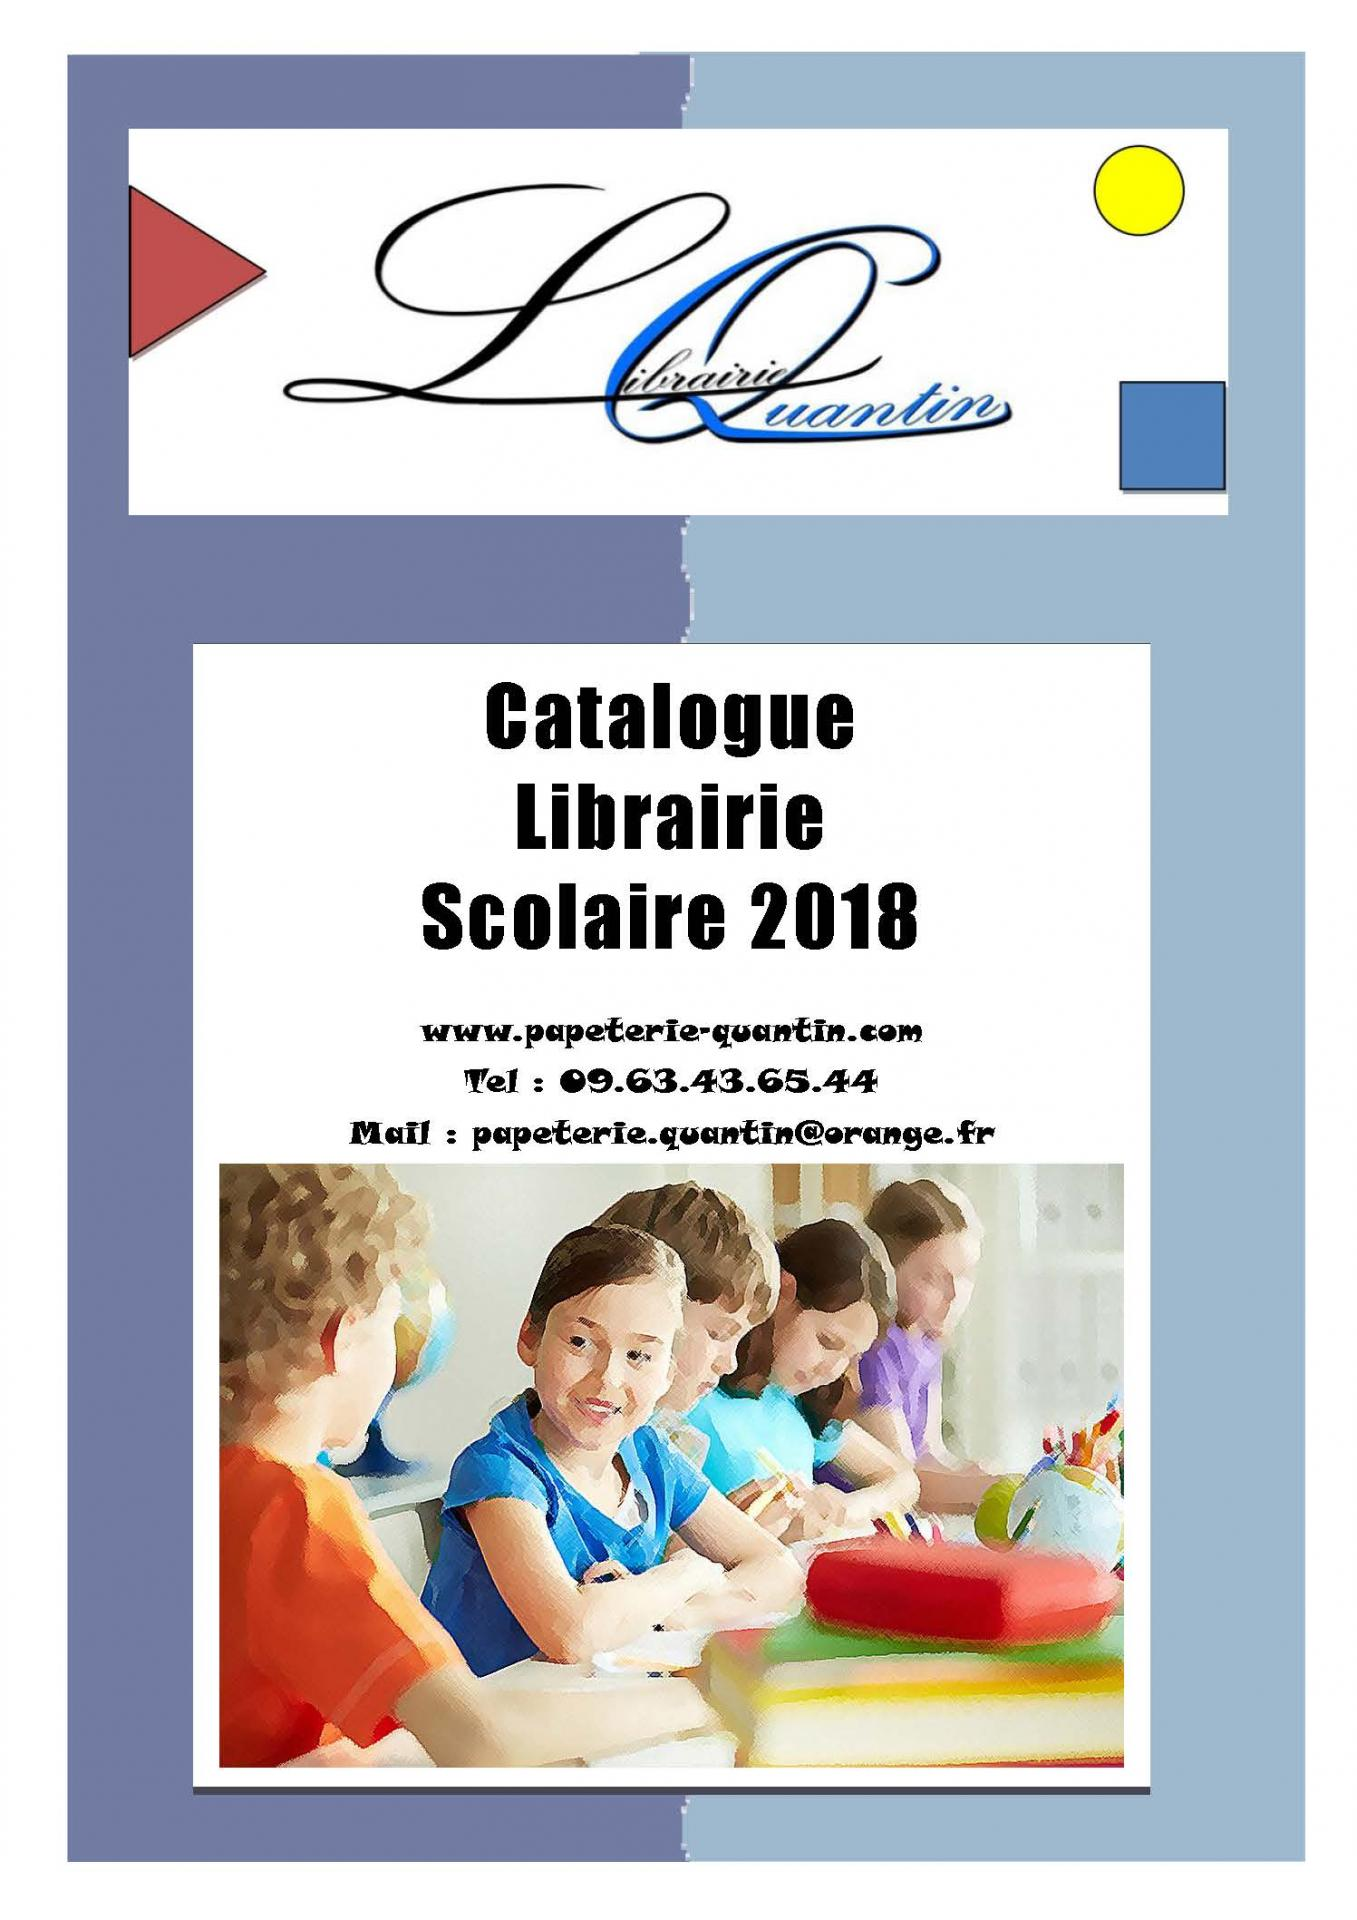 Premiere page catalogue scolaire 2018